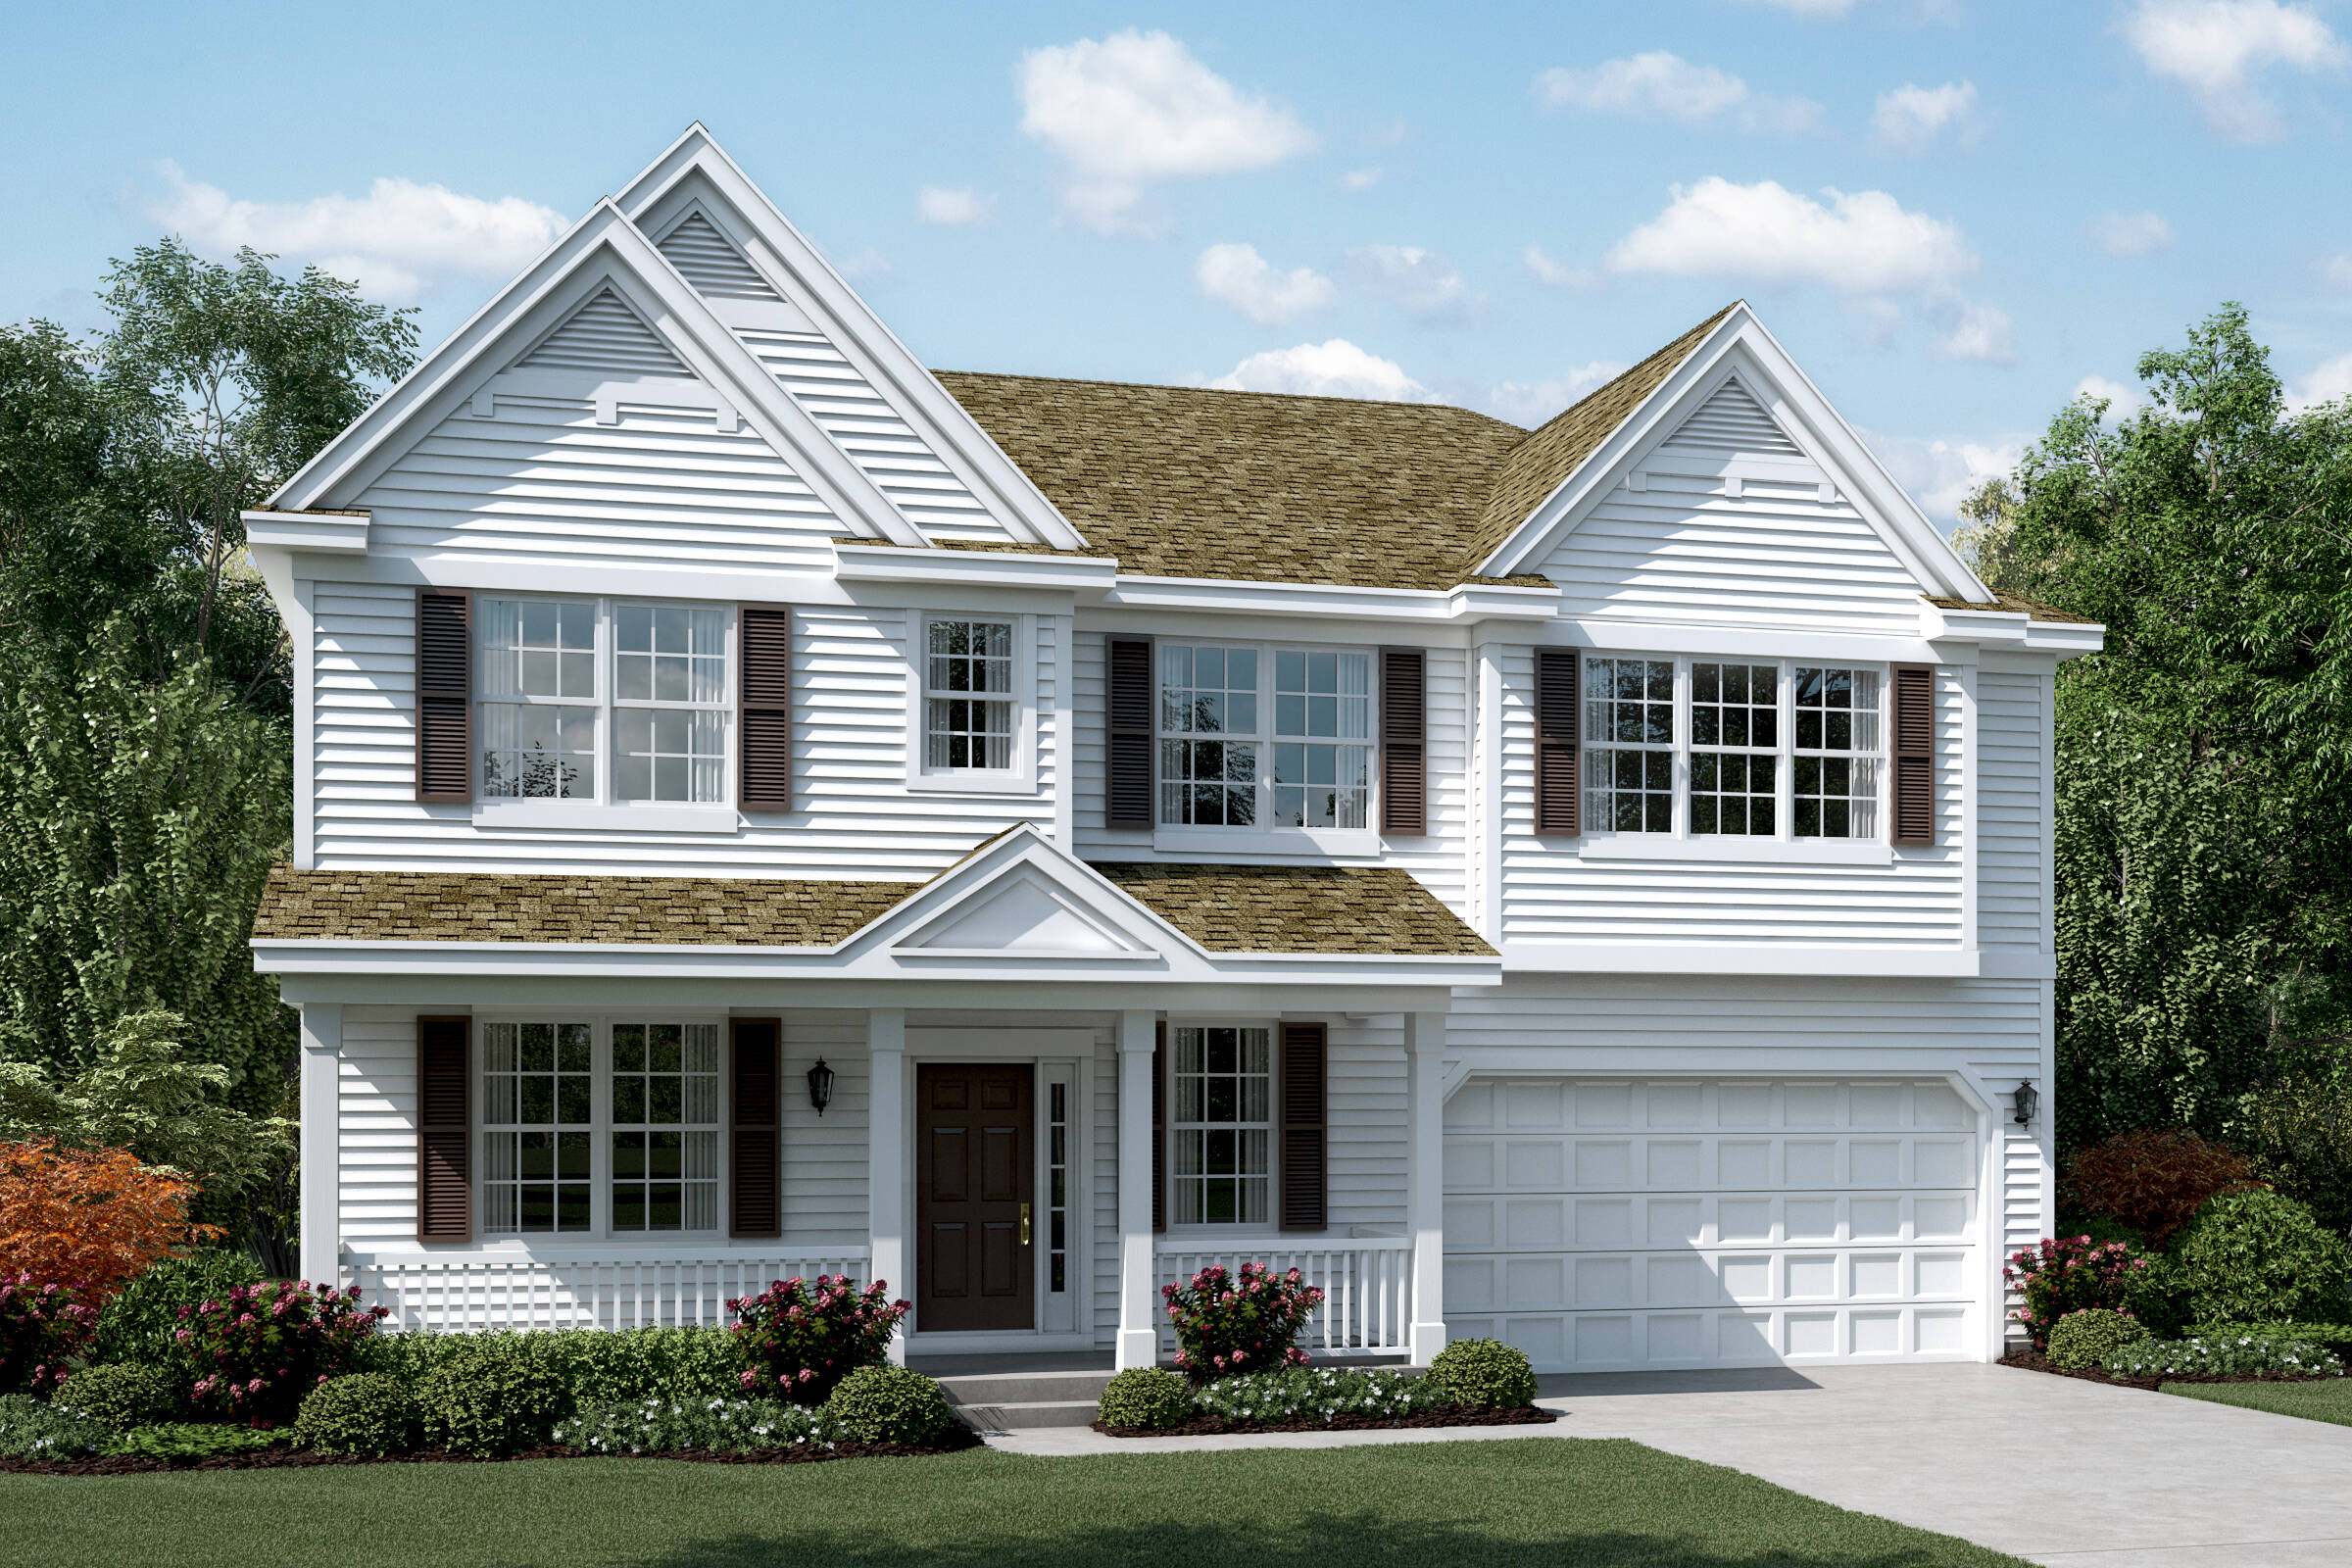 jasmin d sagebrook new homes in south elgin illinois